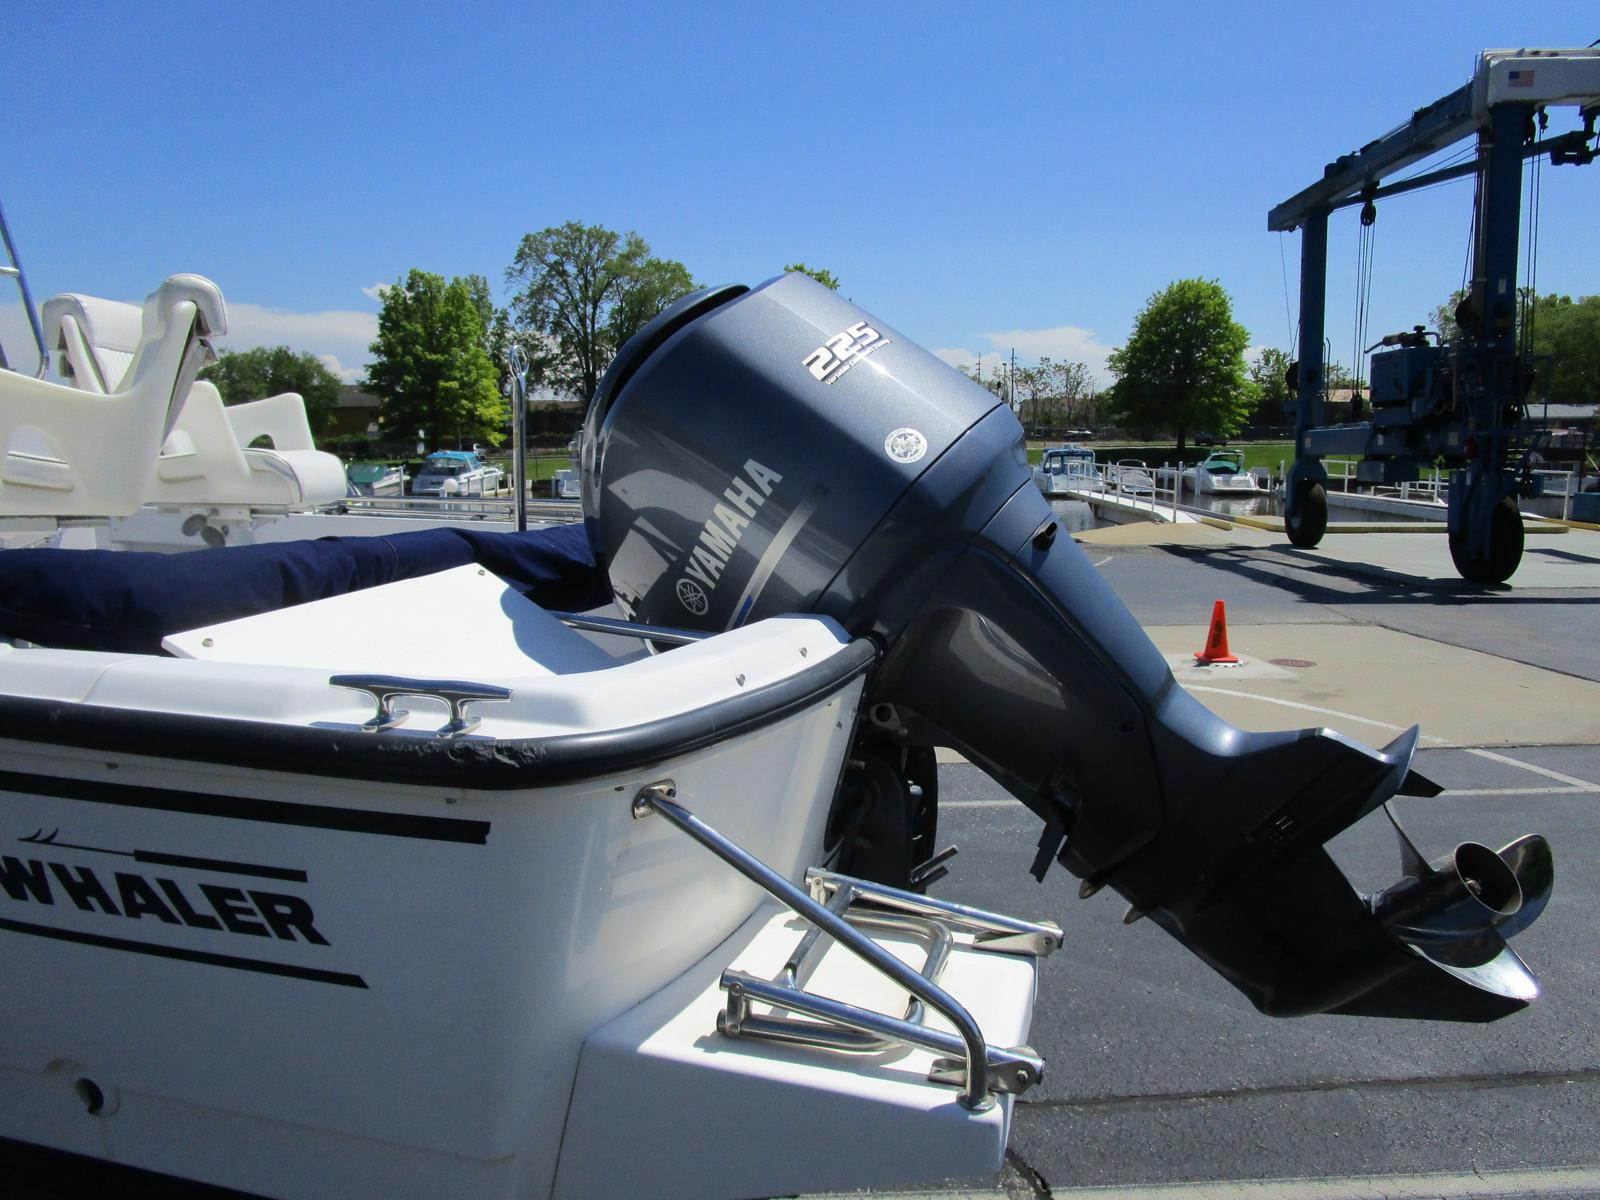 1996 Boston Whaler boat for sale, model of the boat is 190 Outrage & Image # 8 of 9